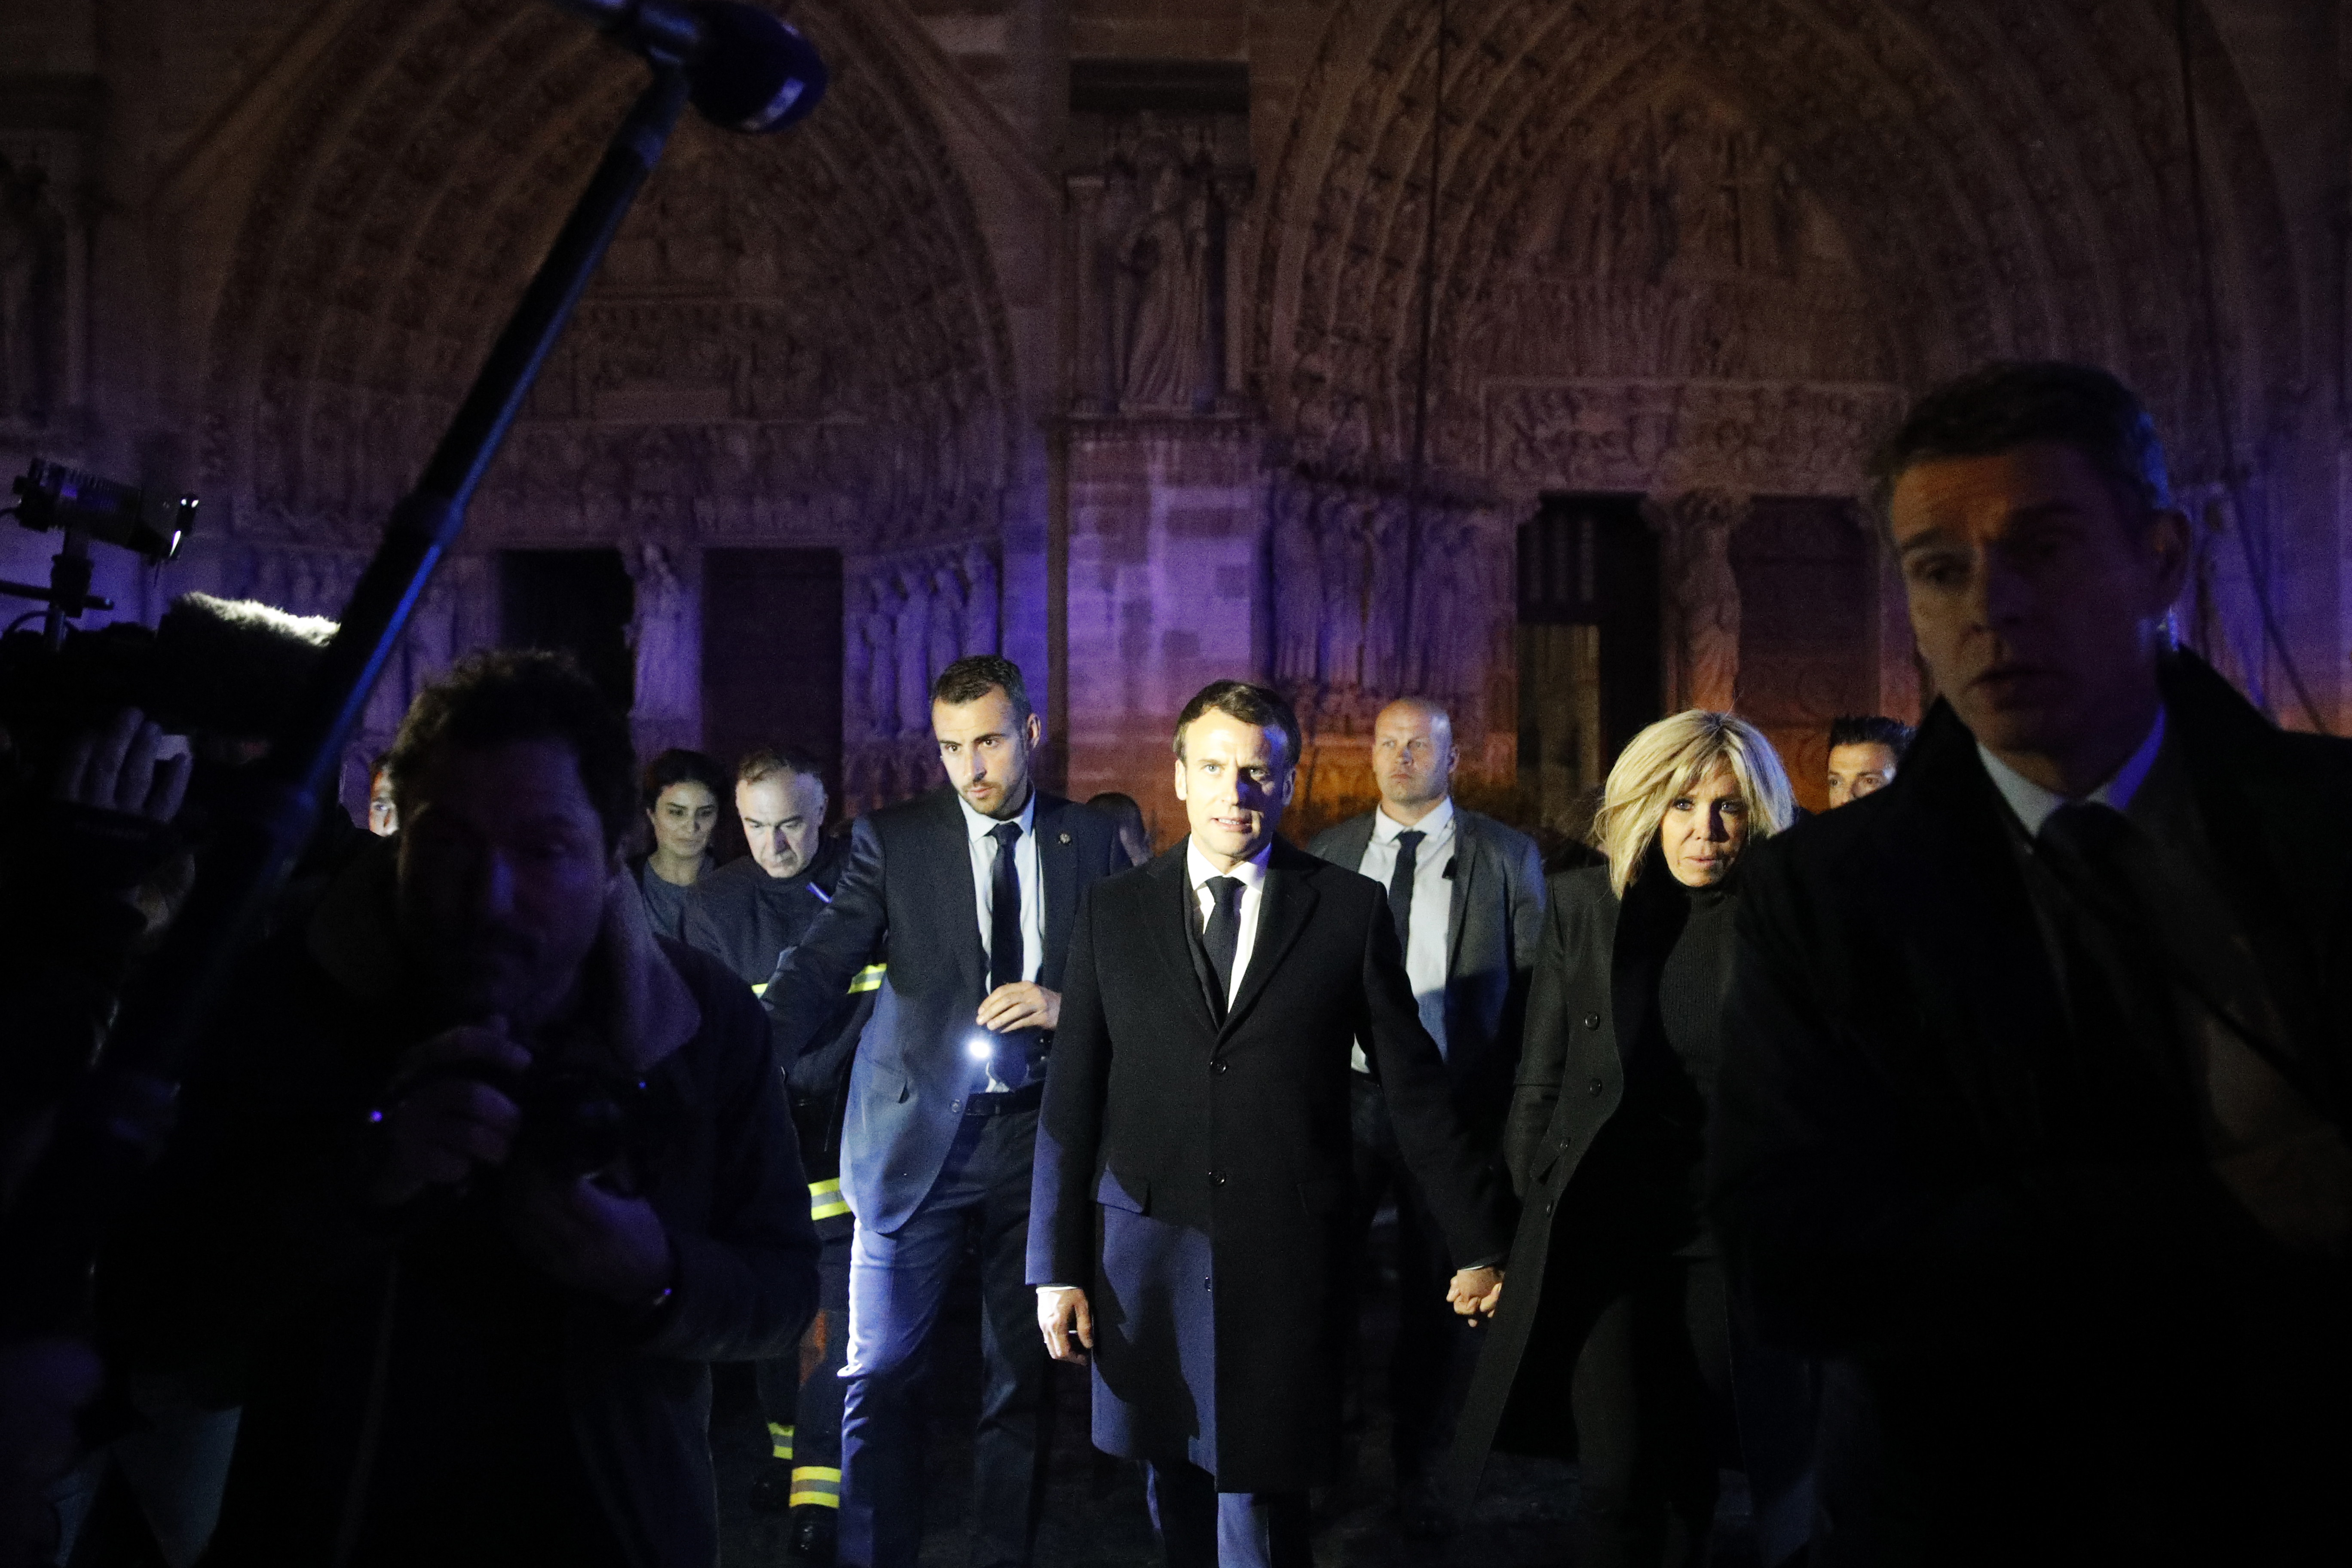 epa07509135 French President Emmanuel Macron (C) and his wife Brigitte Macron (R) pay a visit to firemen fighting against a fire burning the roof of the Notre-Dame cathedral in Paris, France, 15 April 2019. A fire started in the late afternoon in one of the most visited monuments of the French capital.  EPA-EFE/YOAN VALAT